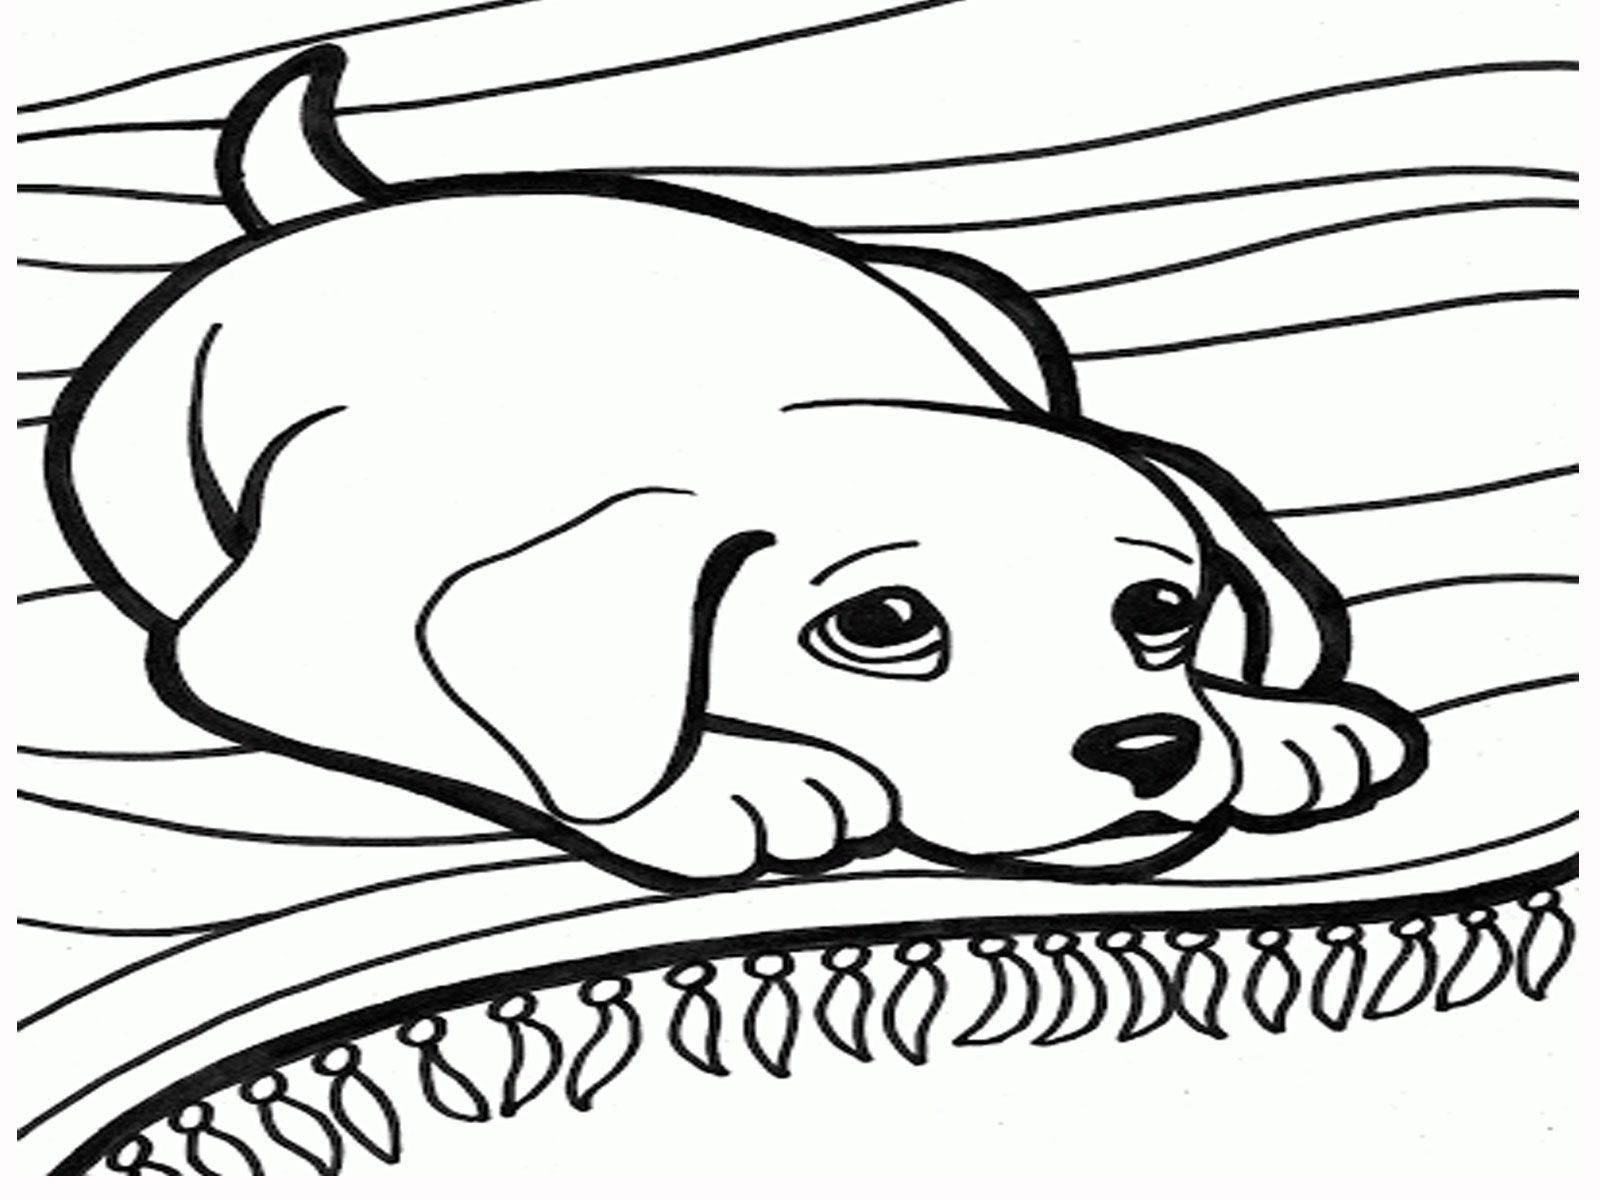 Uncategorized Easy Coloring Pages For Girls easy dog coloring pages for girls dogs coloring